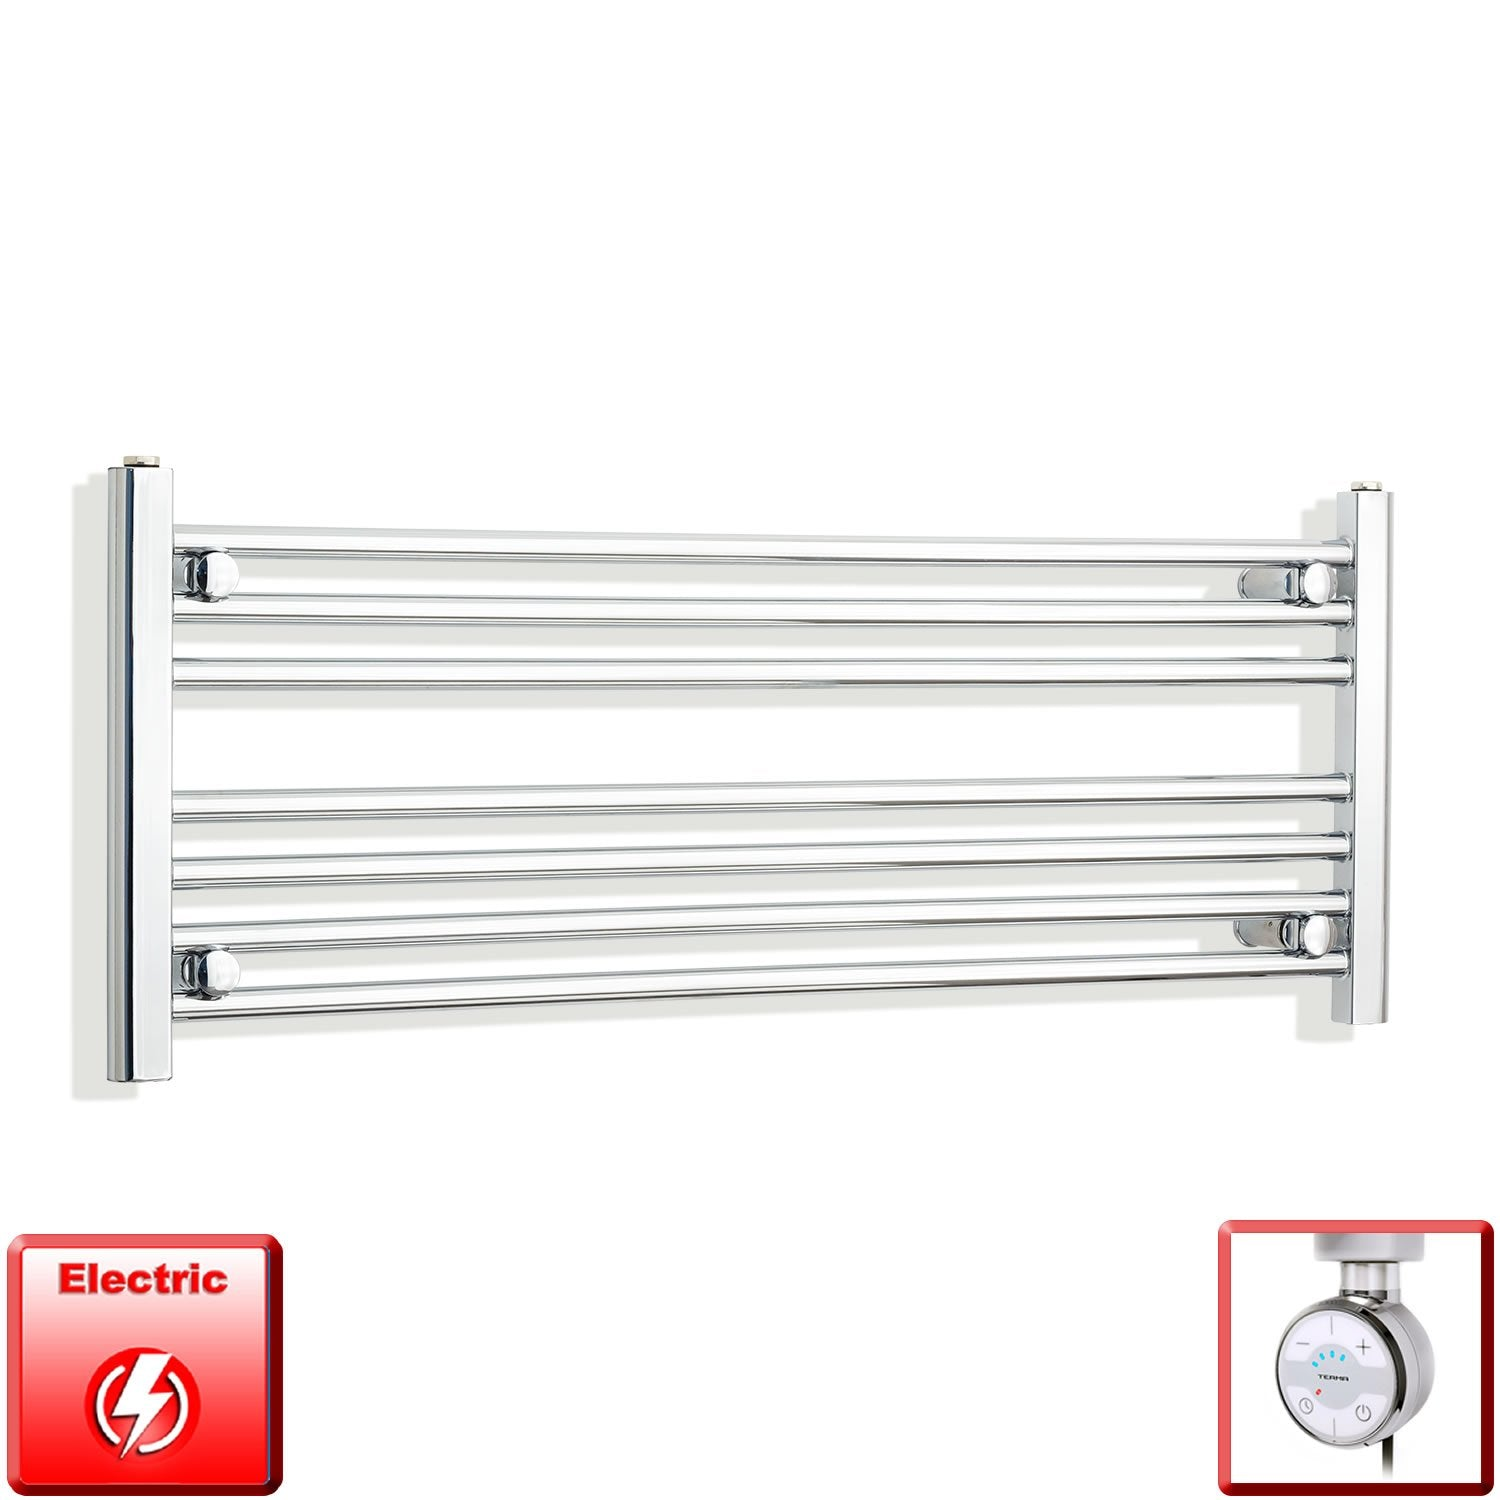 950mm Wide 400mm High Flat Chrome Pre-Filled Electric Heated Towel Rail Radiator HTR,MOA Thermostatic Element